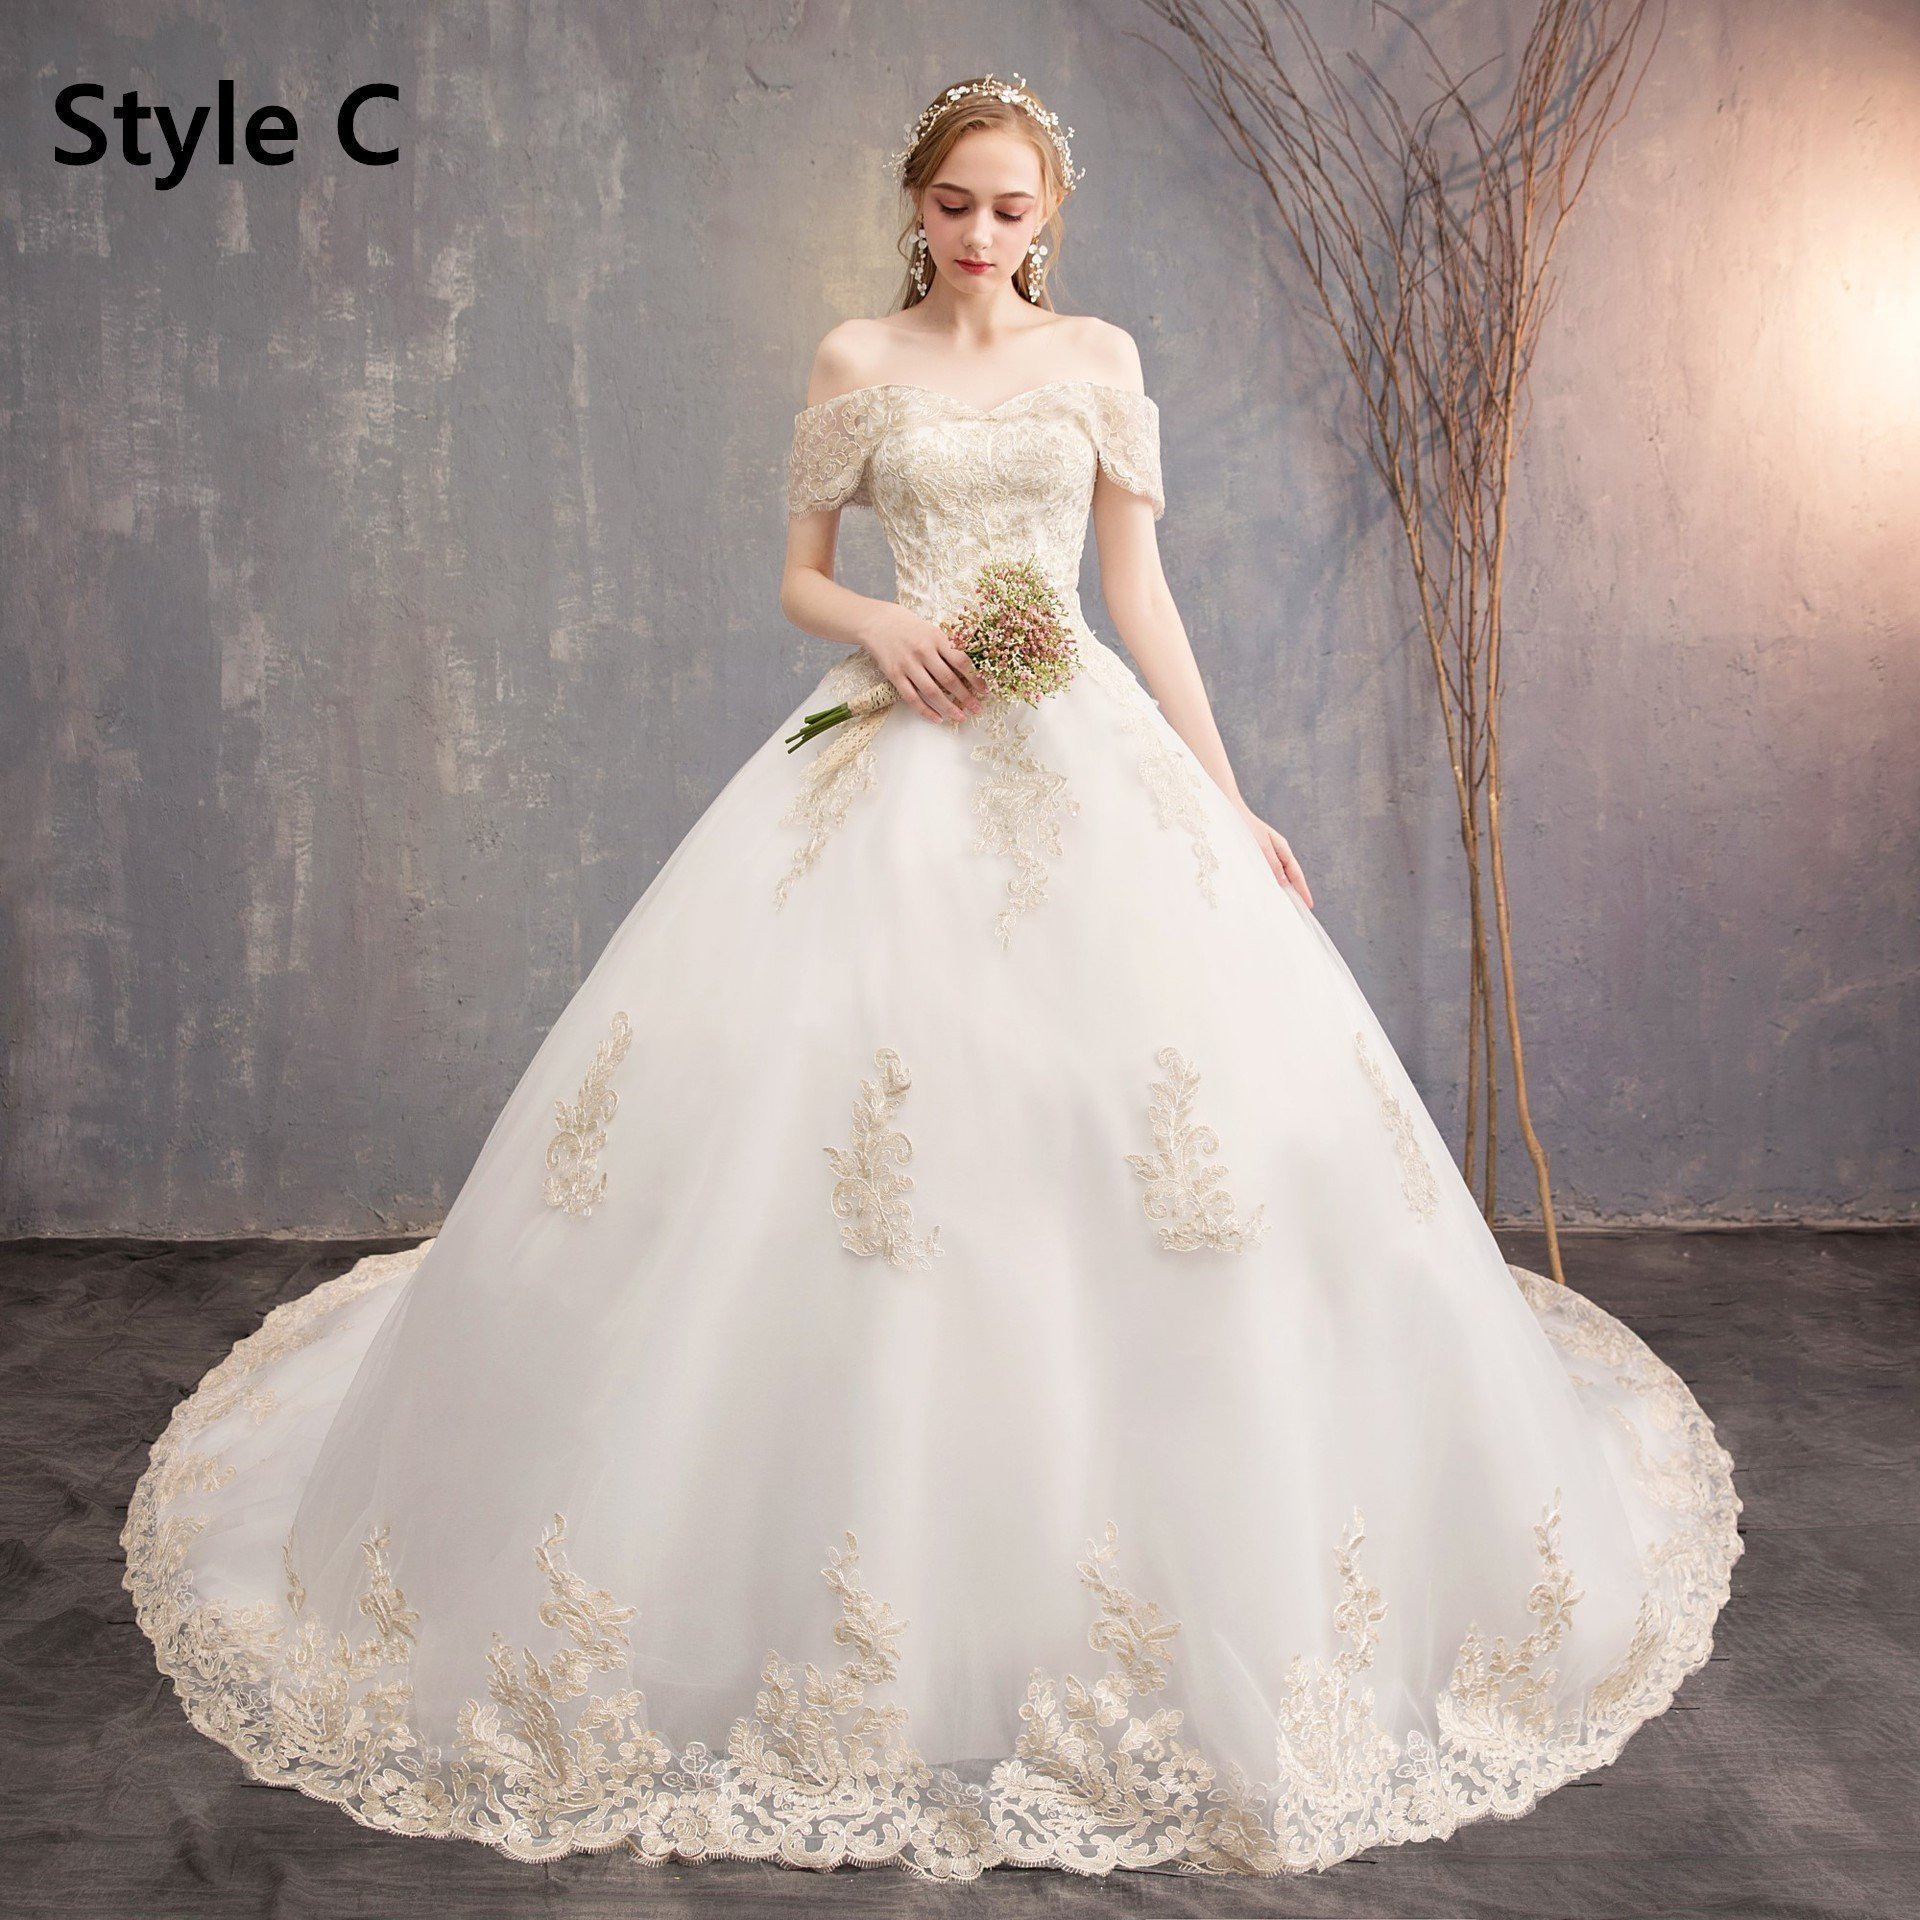 Best Wedding Dresses Lace Dresses Fancy Lace Dress Wedding Party Dresses Floral Milkmaid Dress 2020 Wedding Dresses Wedding Fashion Reception Dresses For Brides Under 100